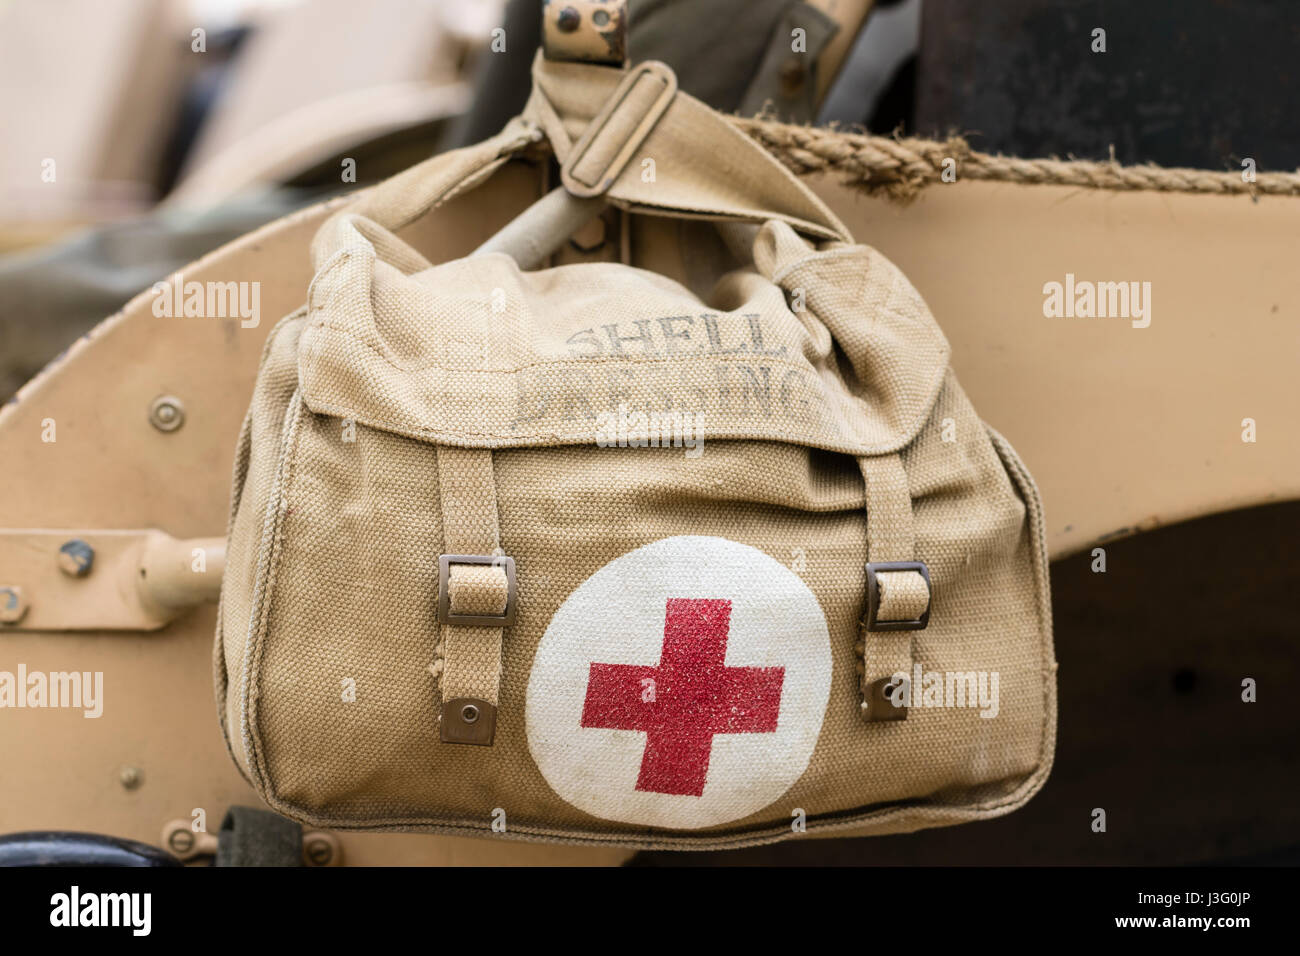 World war two red cross British army, Desert Rats, khaki medical bag.Red cross logo in red on white circle on bag, - Stock Image